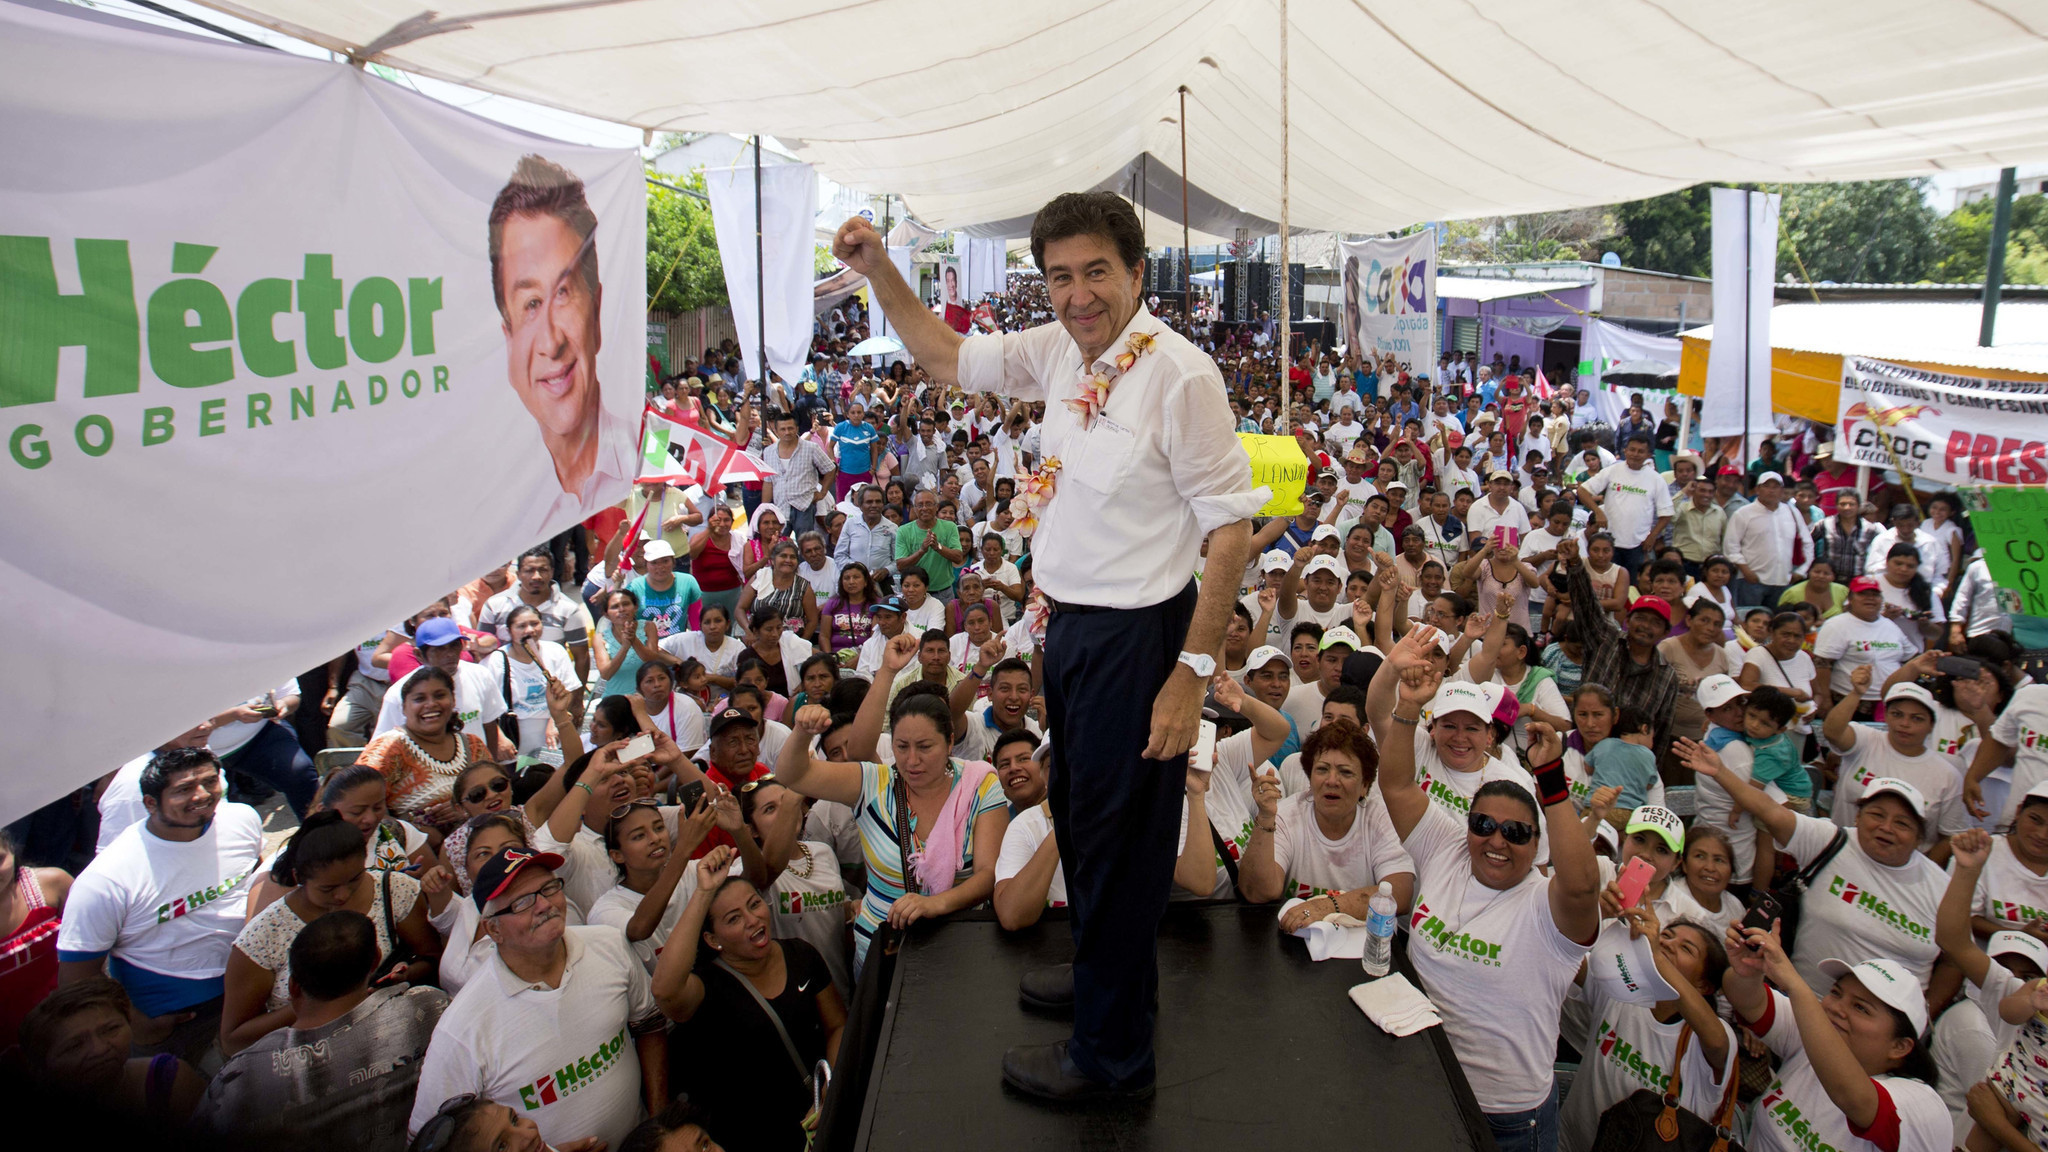 Mexican elections: Ruling party faces challenges from left ...